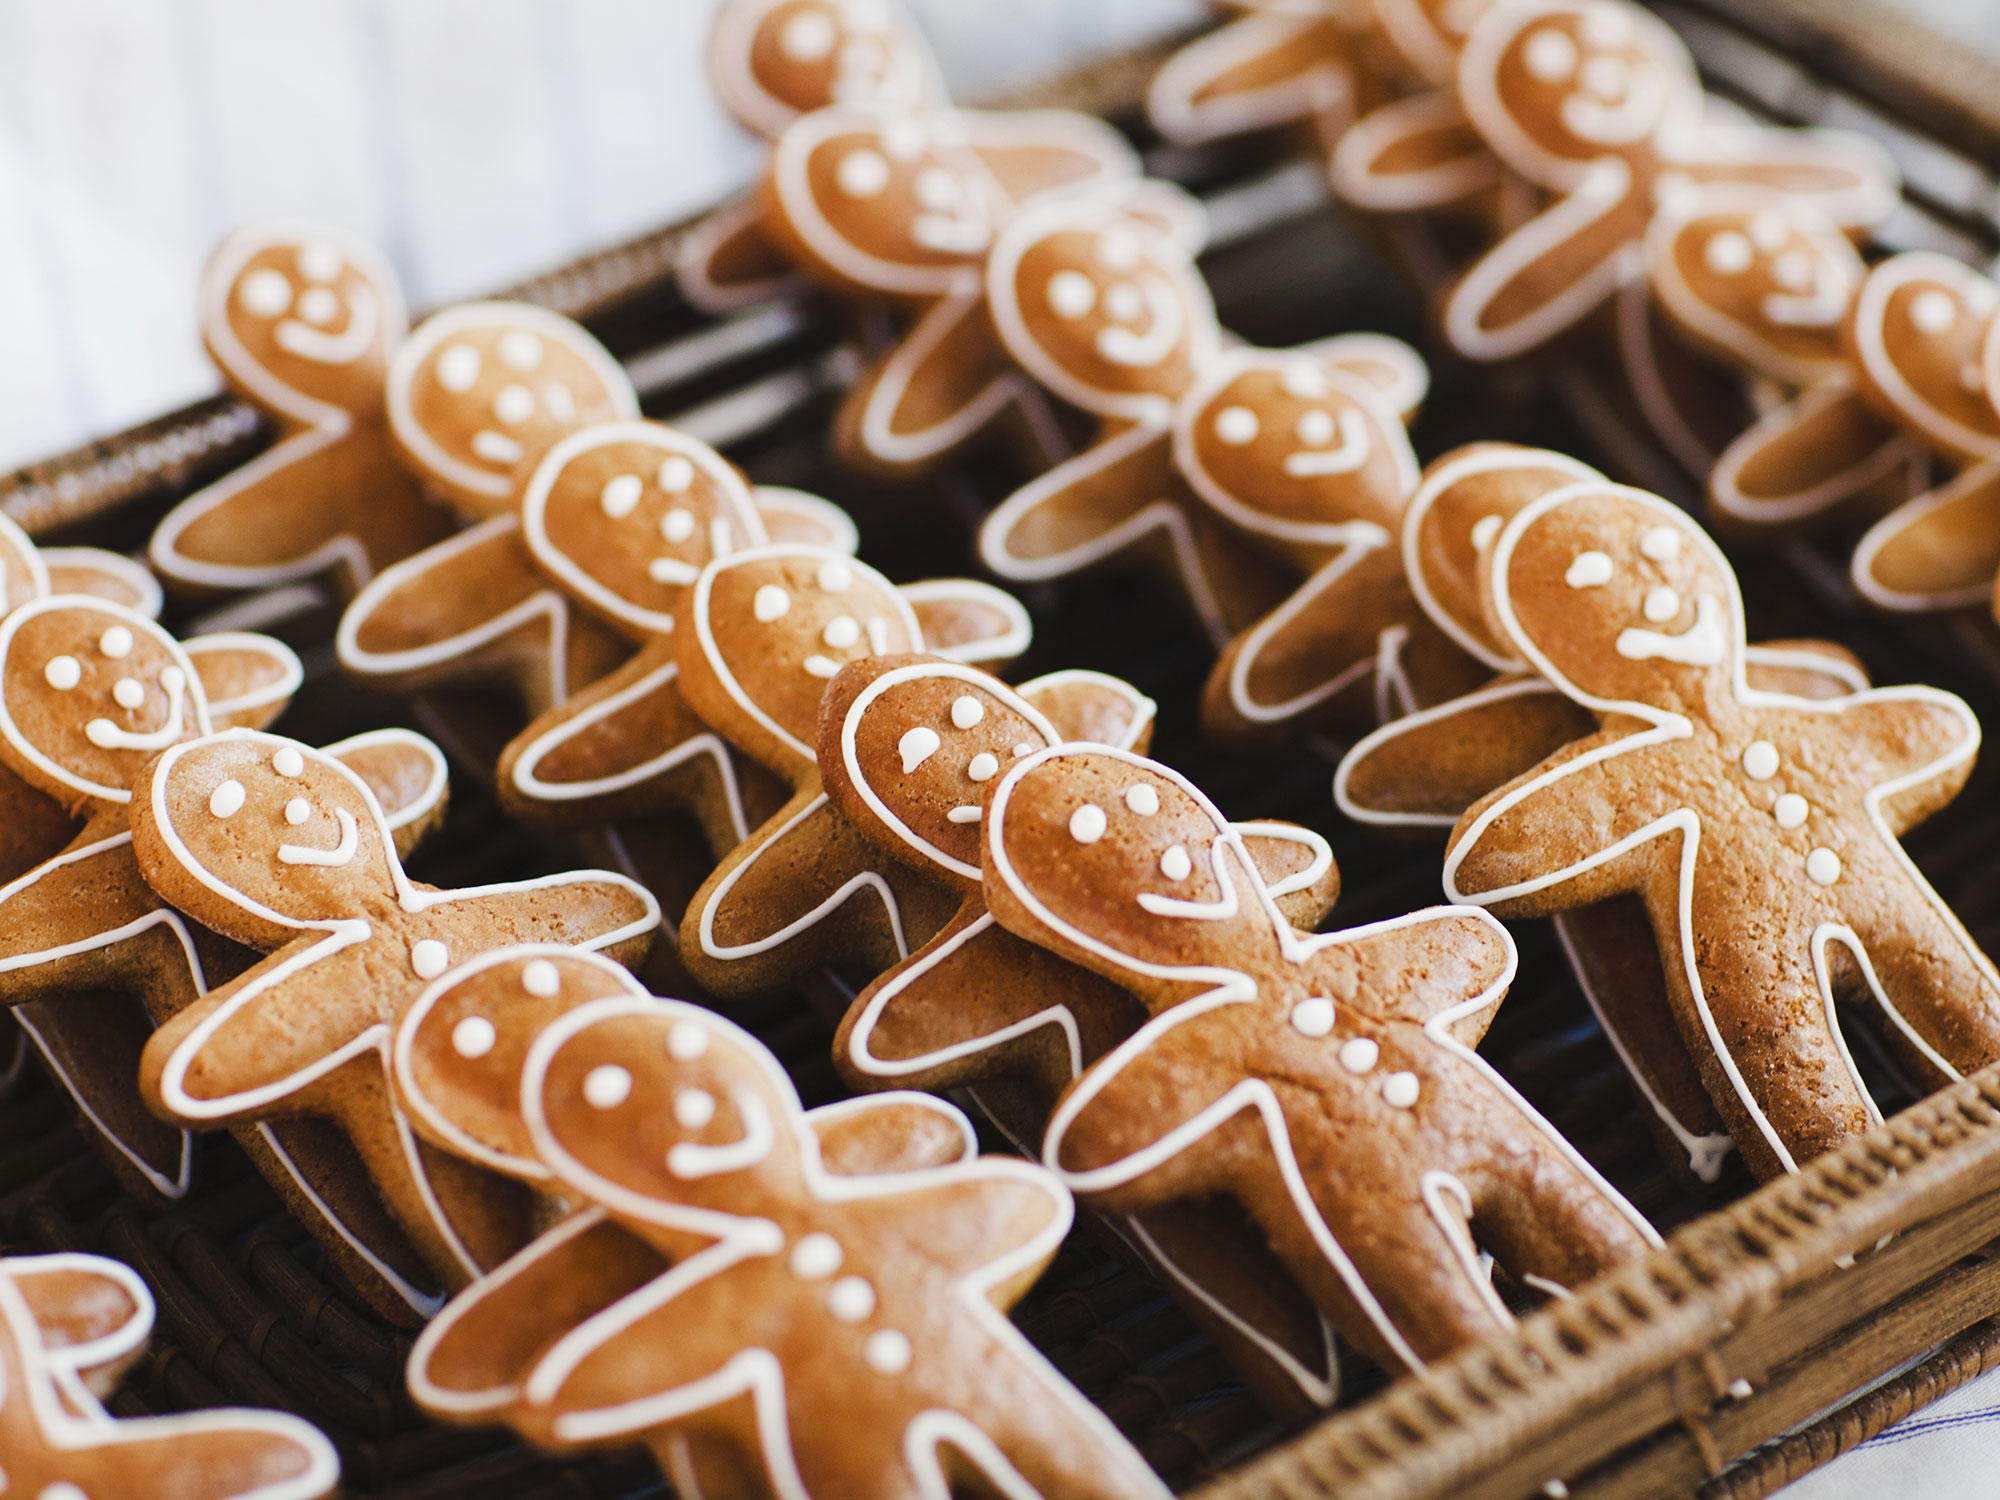 gingerbread-man.jpg